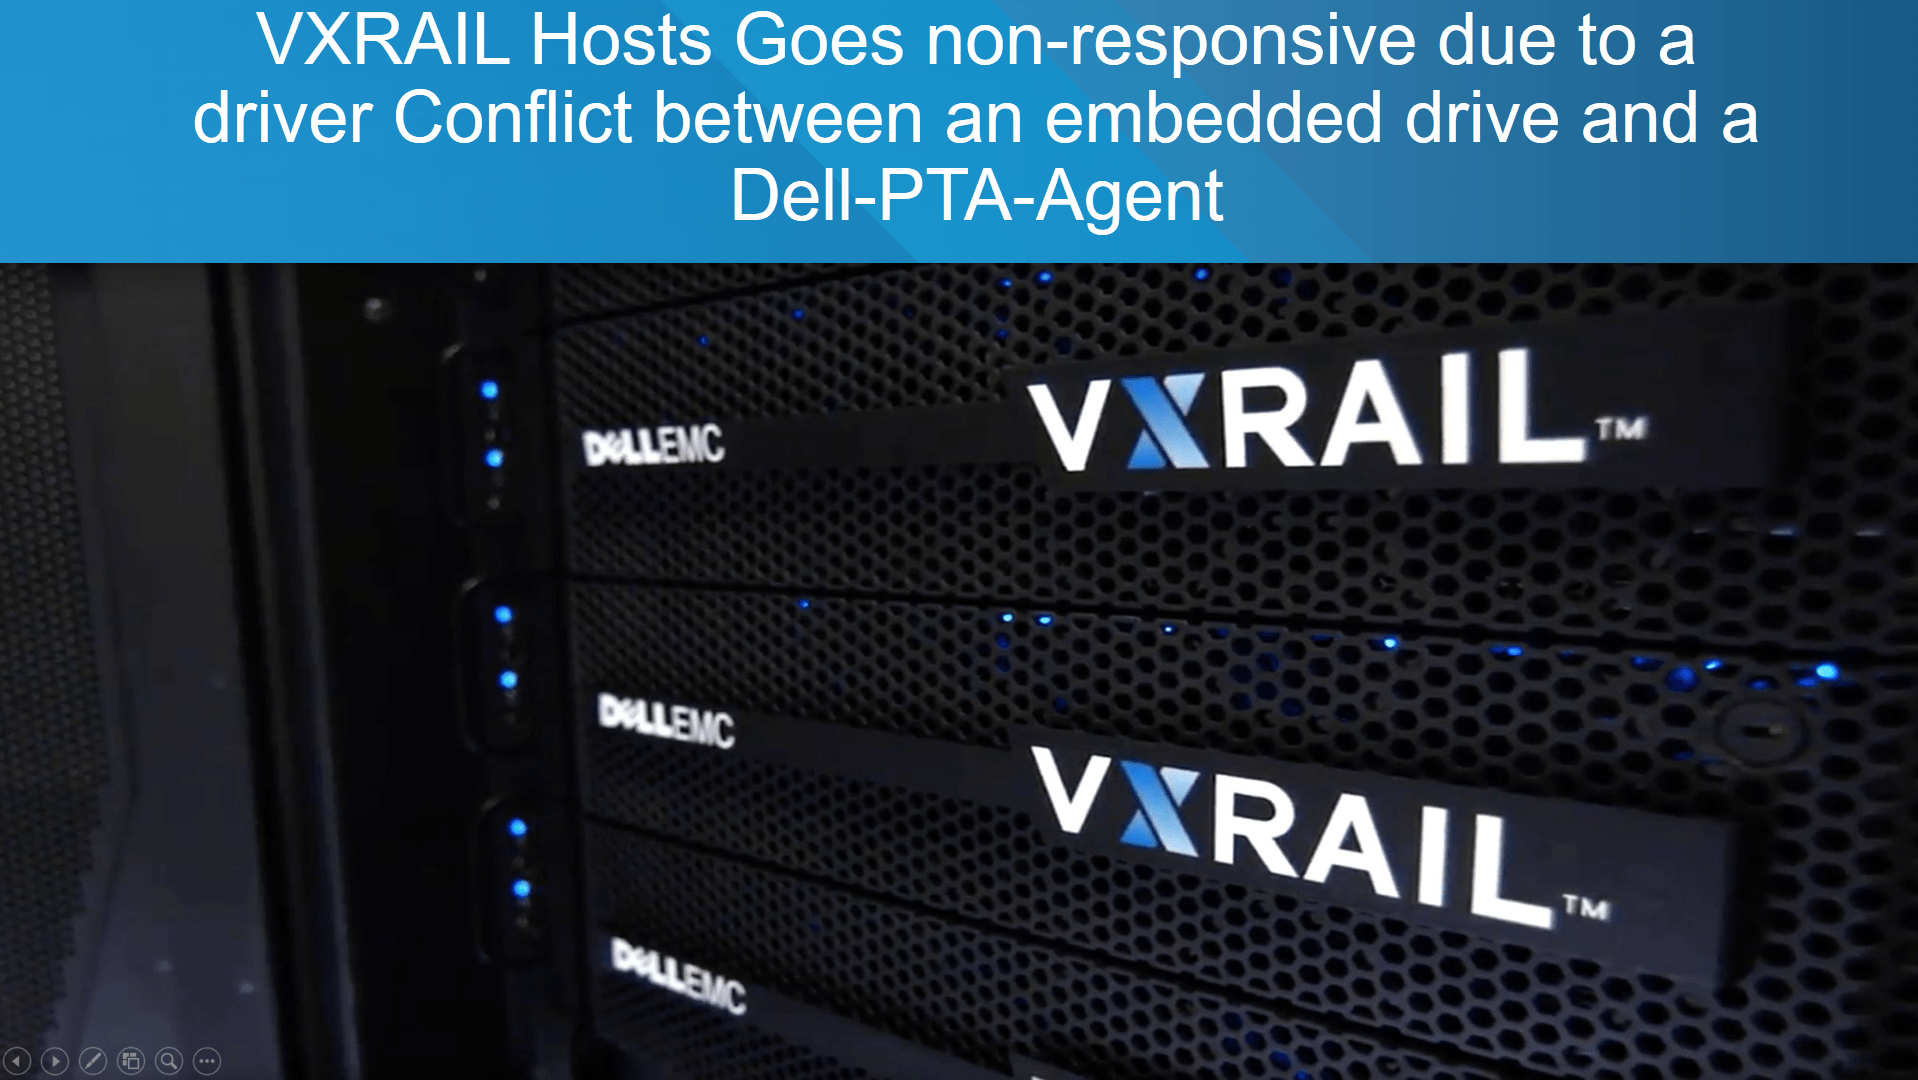 VXRAIL hosts going non-responsive due to a plugin conflict